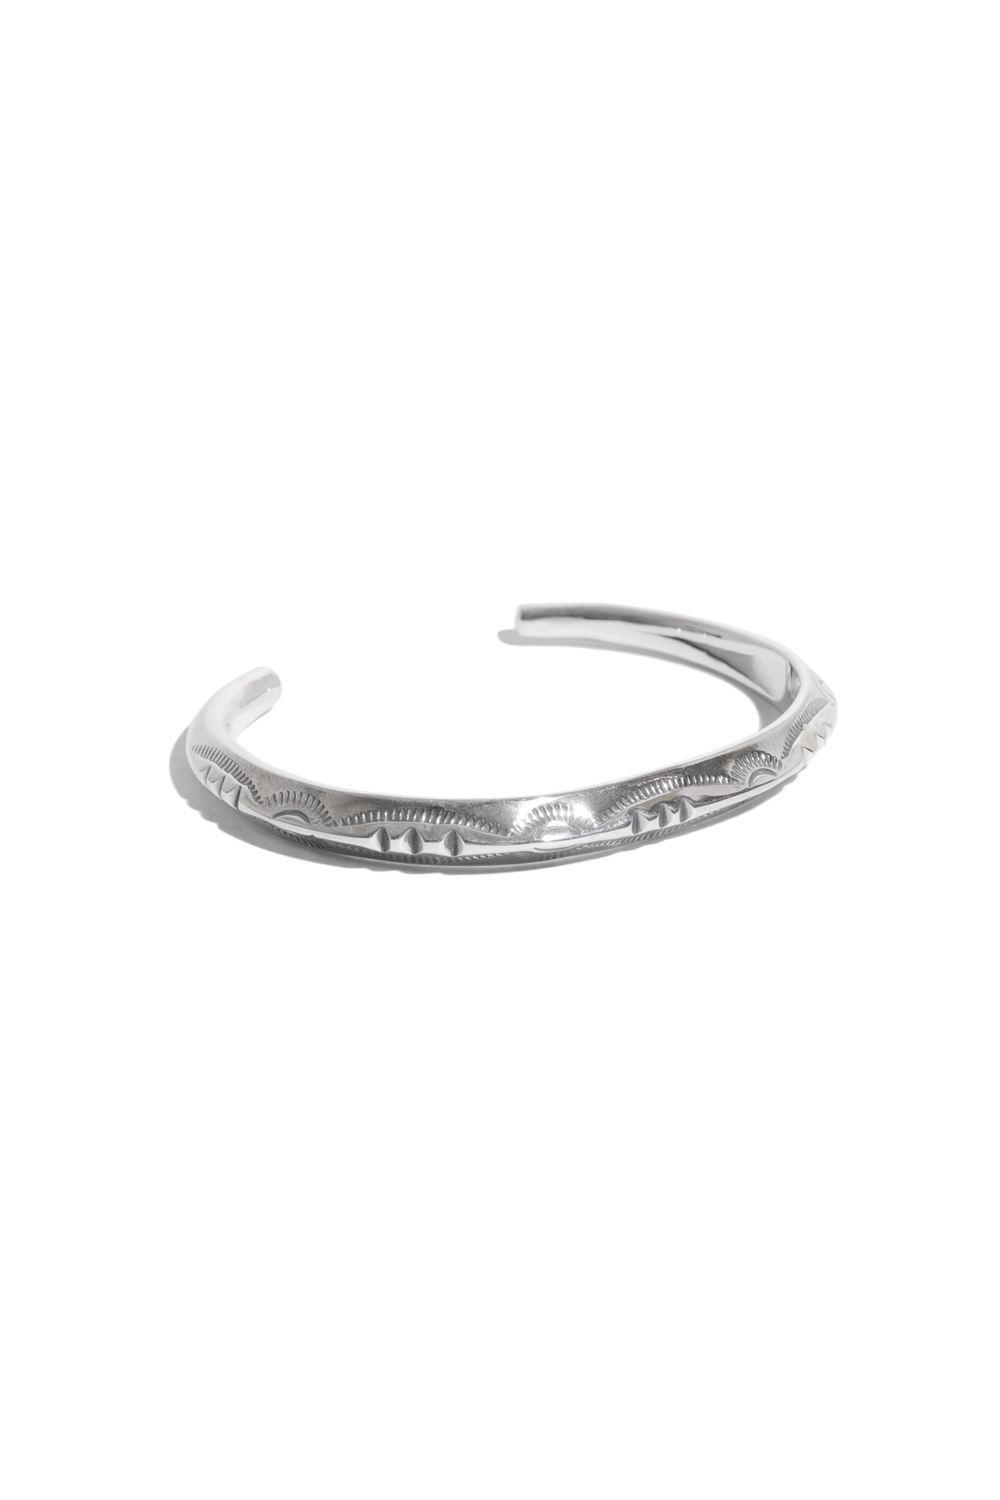 画像1: 【LARRY SMITH】 THIN TRIANGLE BANGLE -3POINT- (LADY'S)